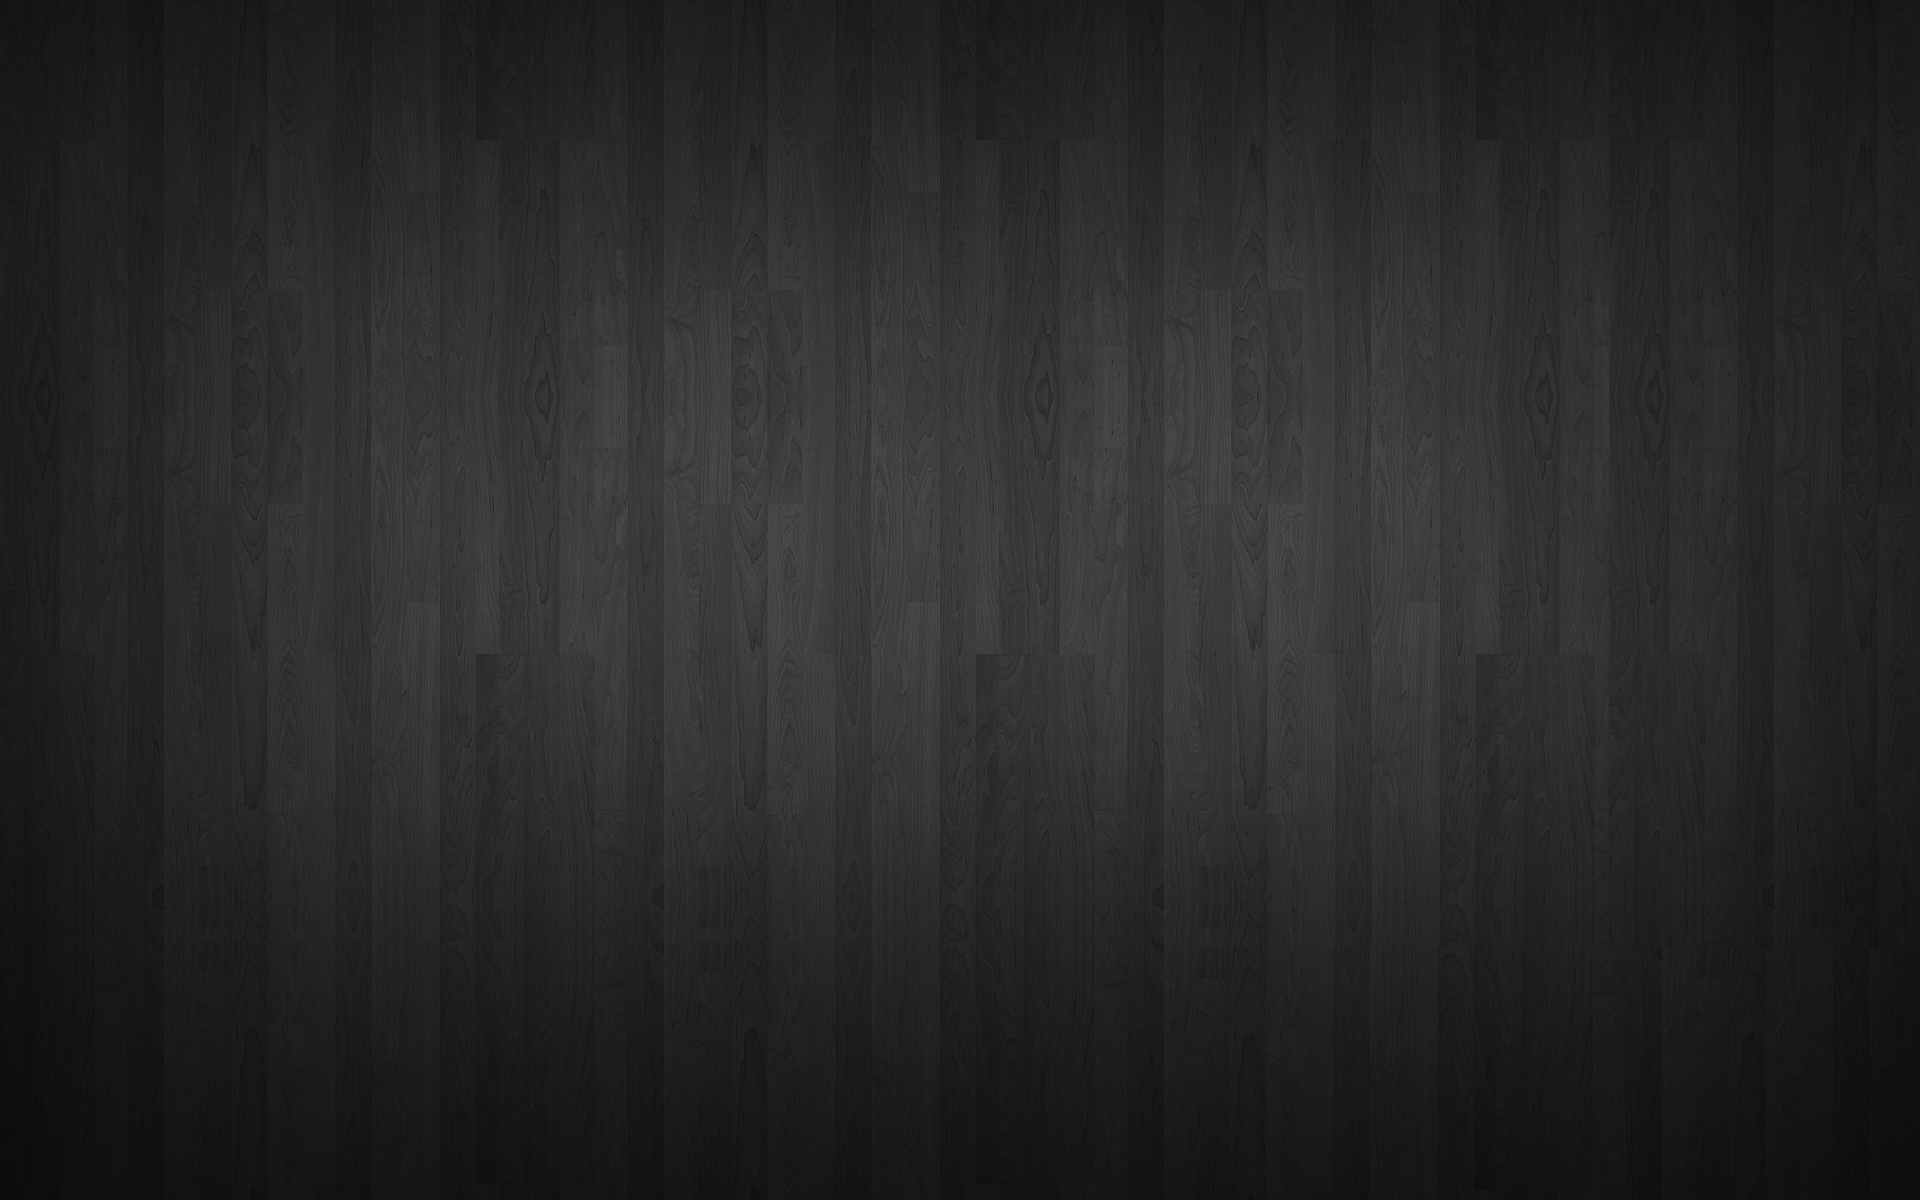 black wallpaper plain backgrounds dark wood black background hd